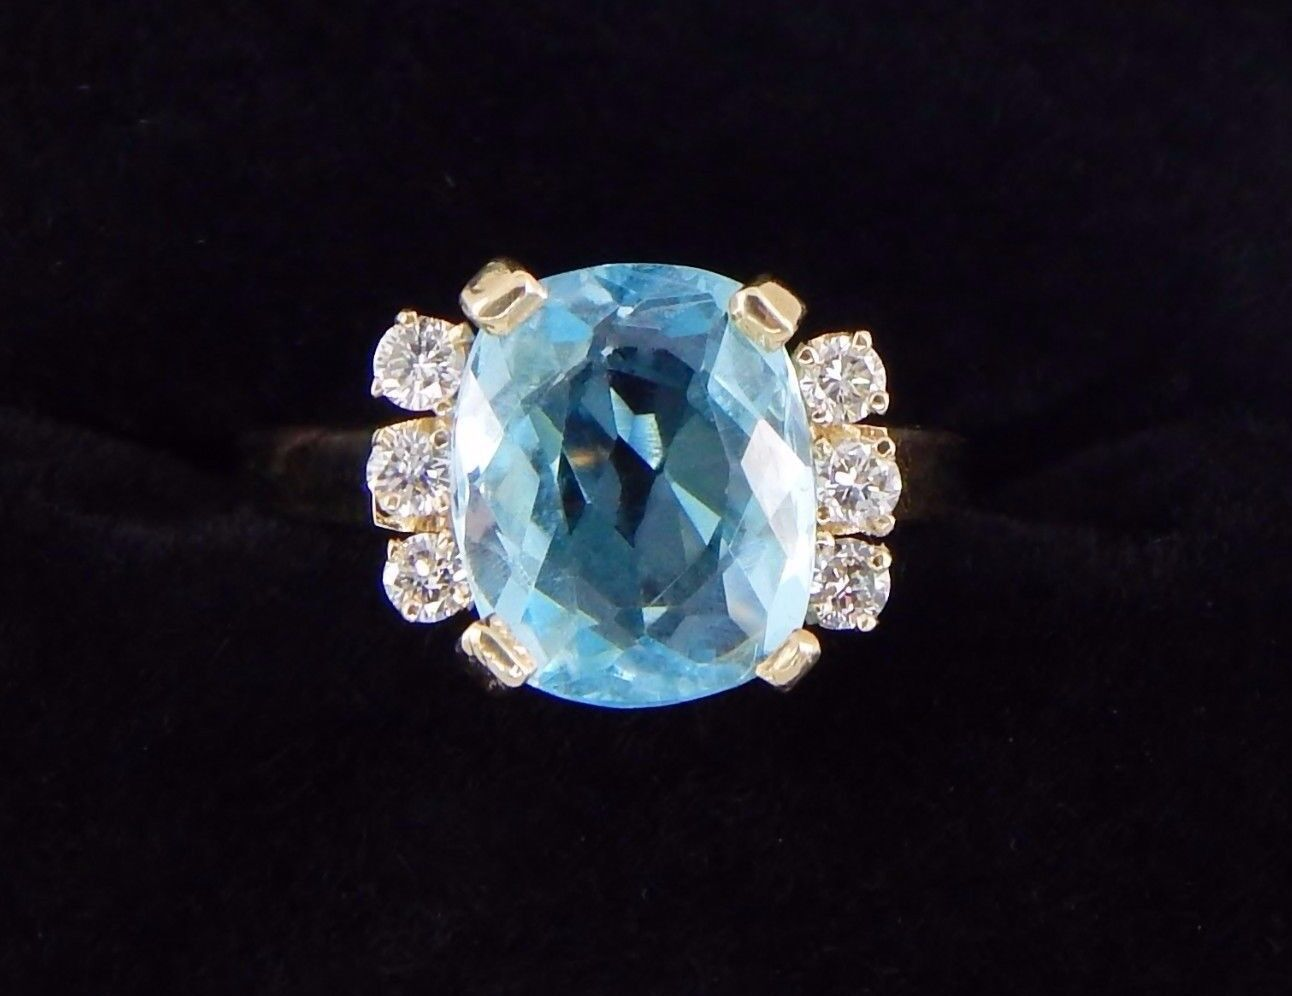 14k 3.94 Carat Cushion Cut bluee Topaz SI1 G Diamond Ring Size 7